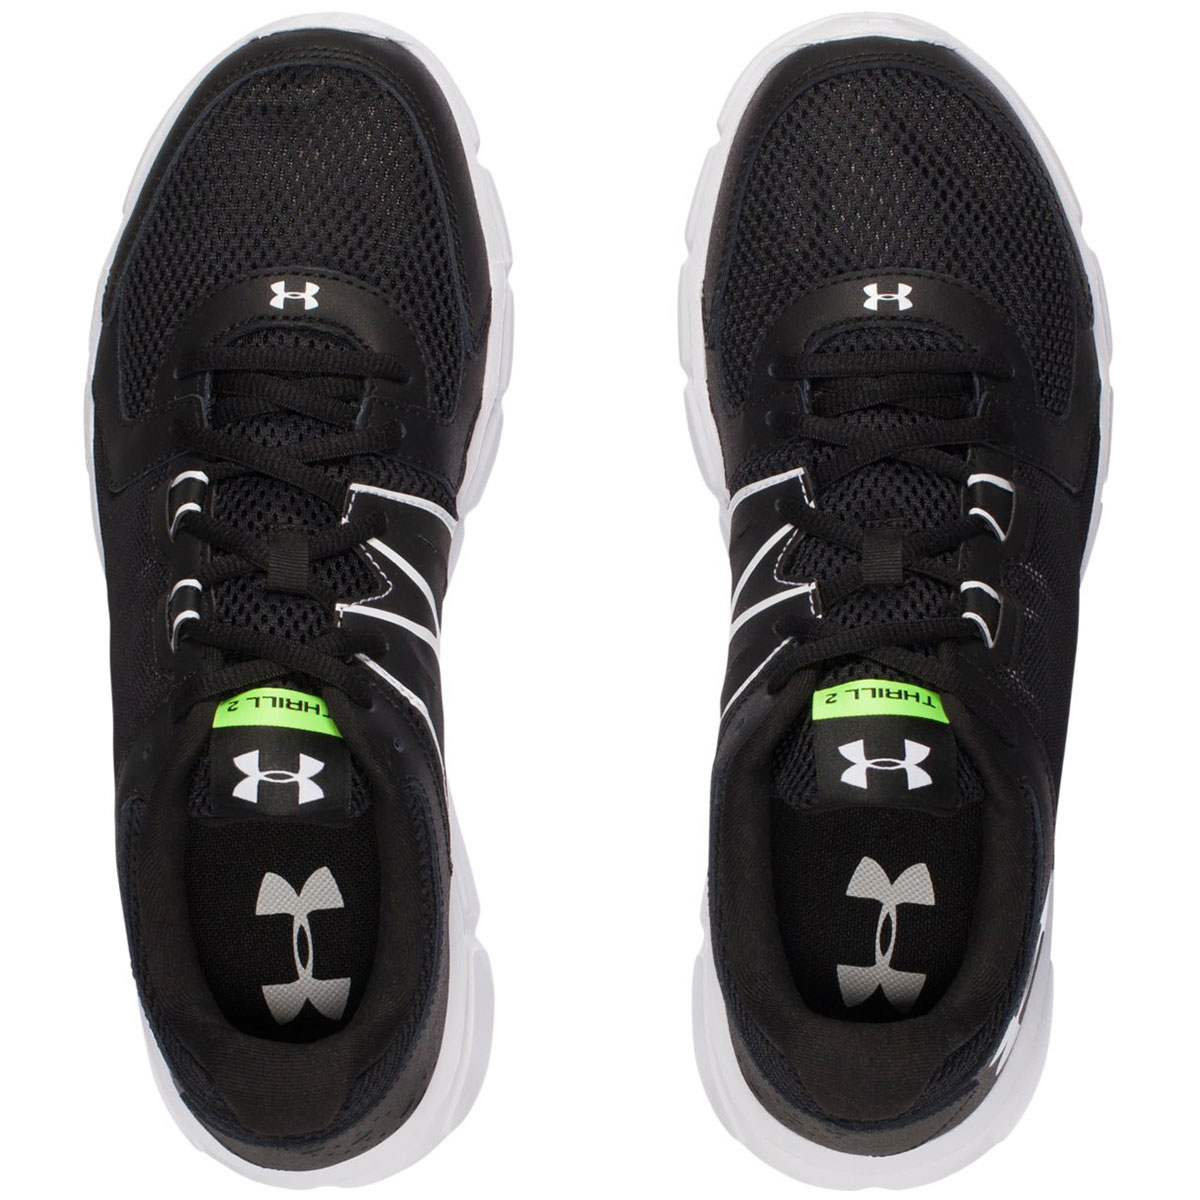 579b1bb87c3a Under Armour Mens UA Thrill 2 Running Trainers Gym Training Shoes 54 ...